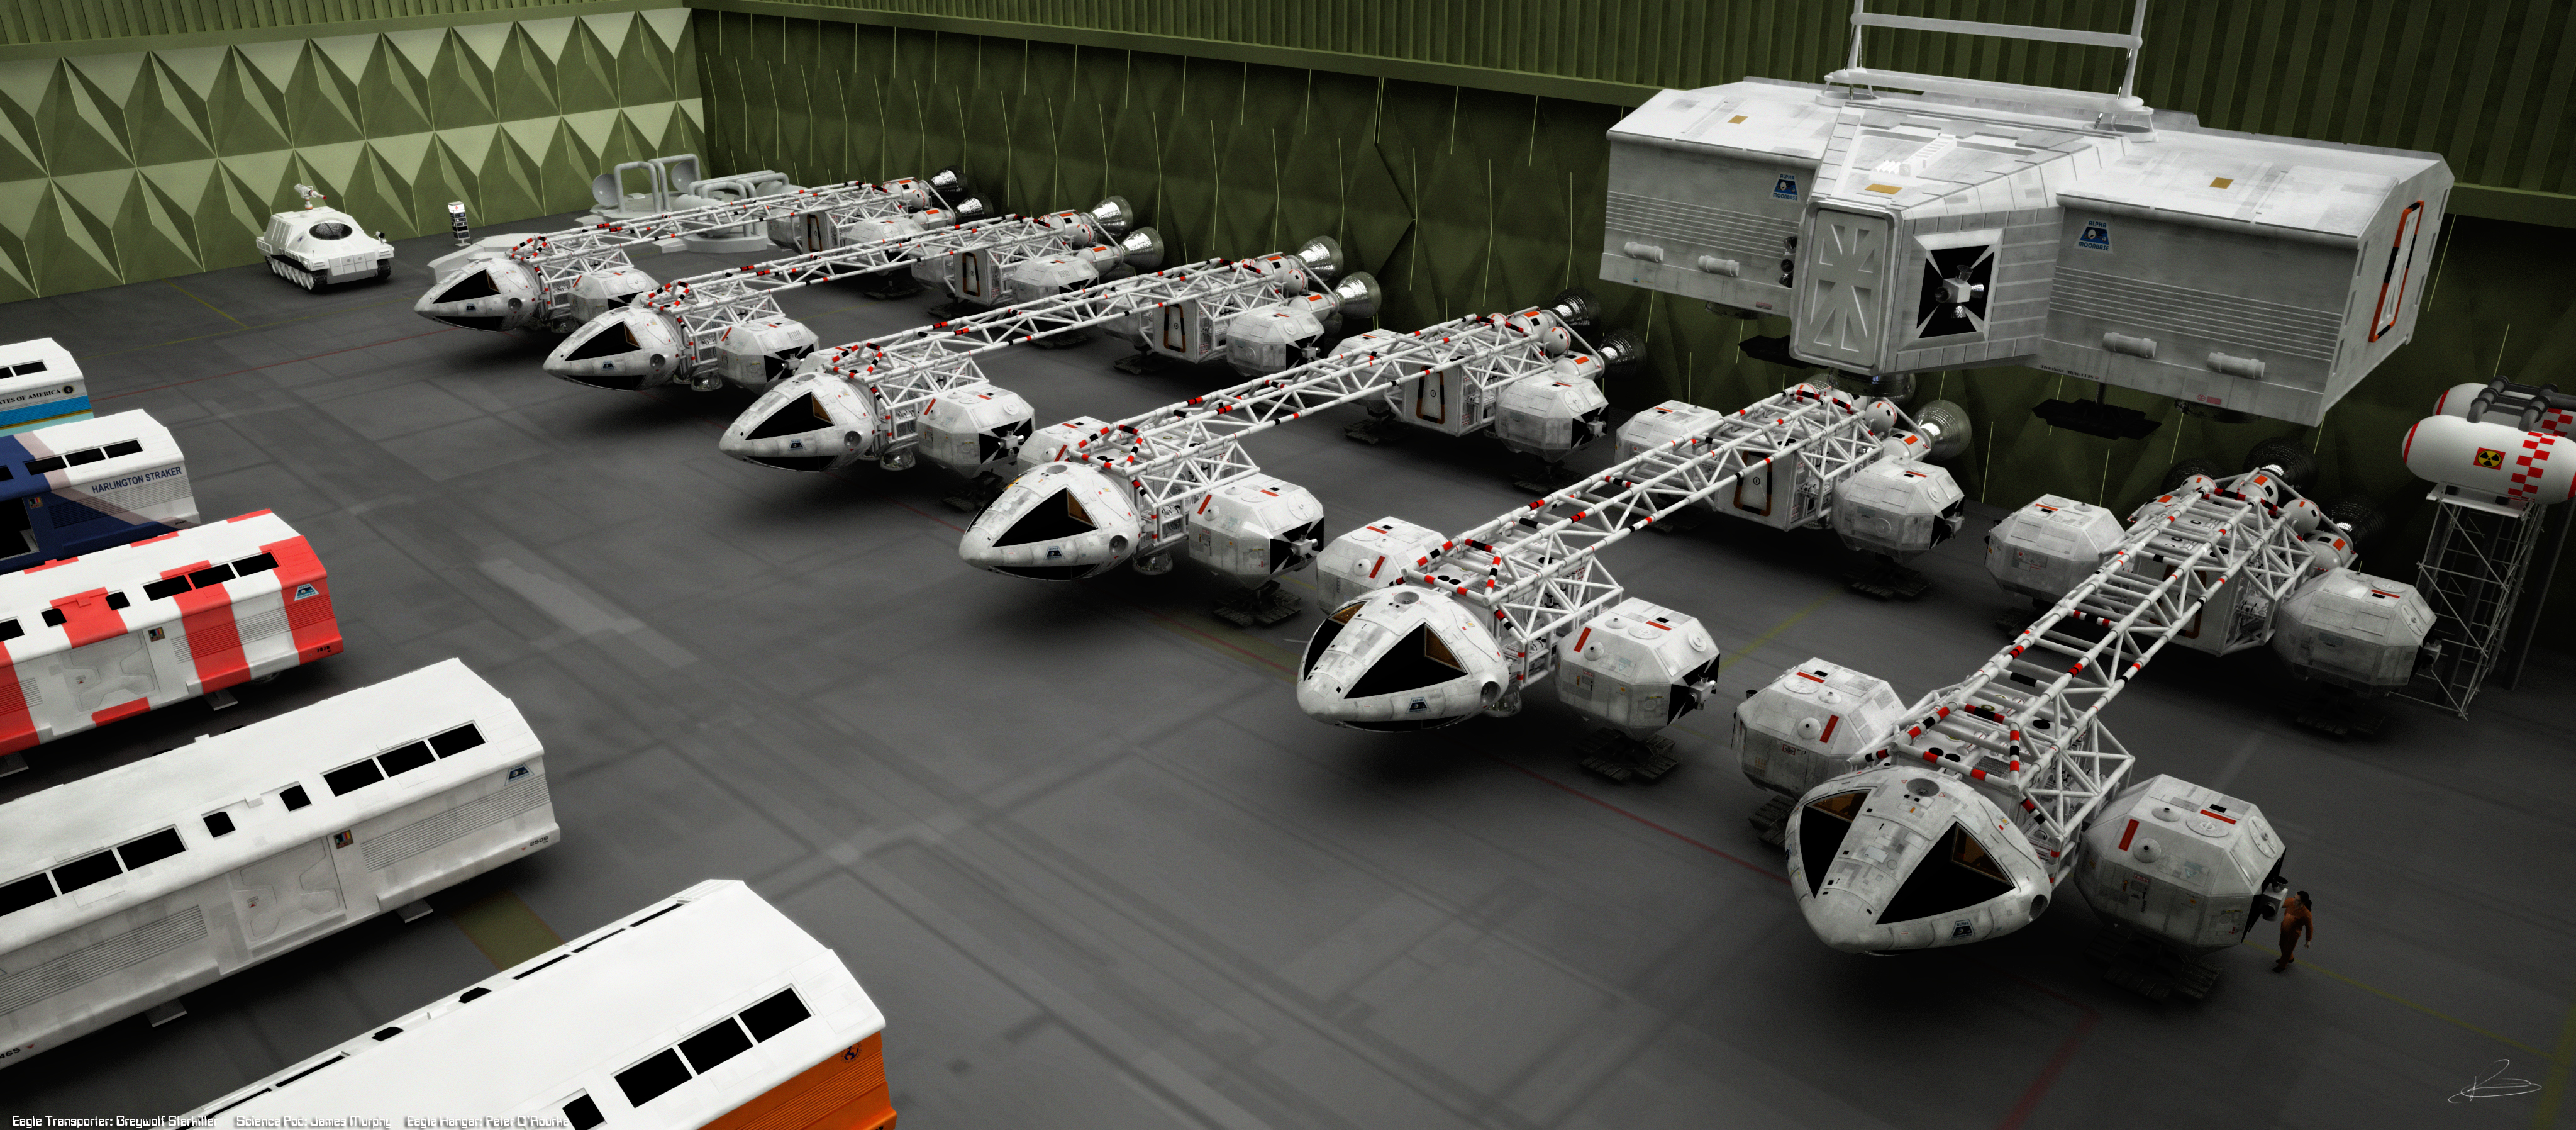 Space 1999: Eagles 1999